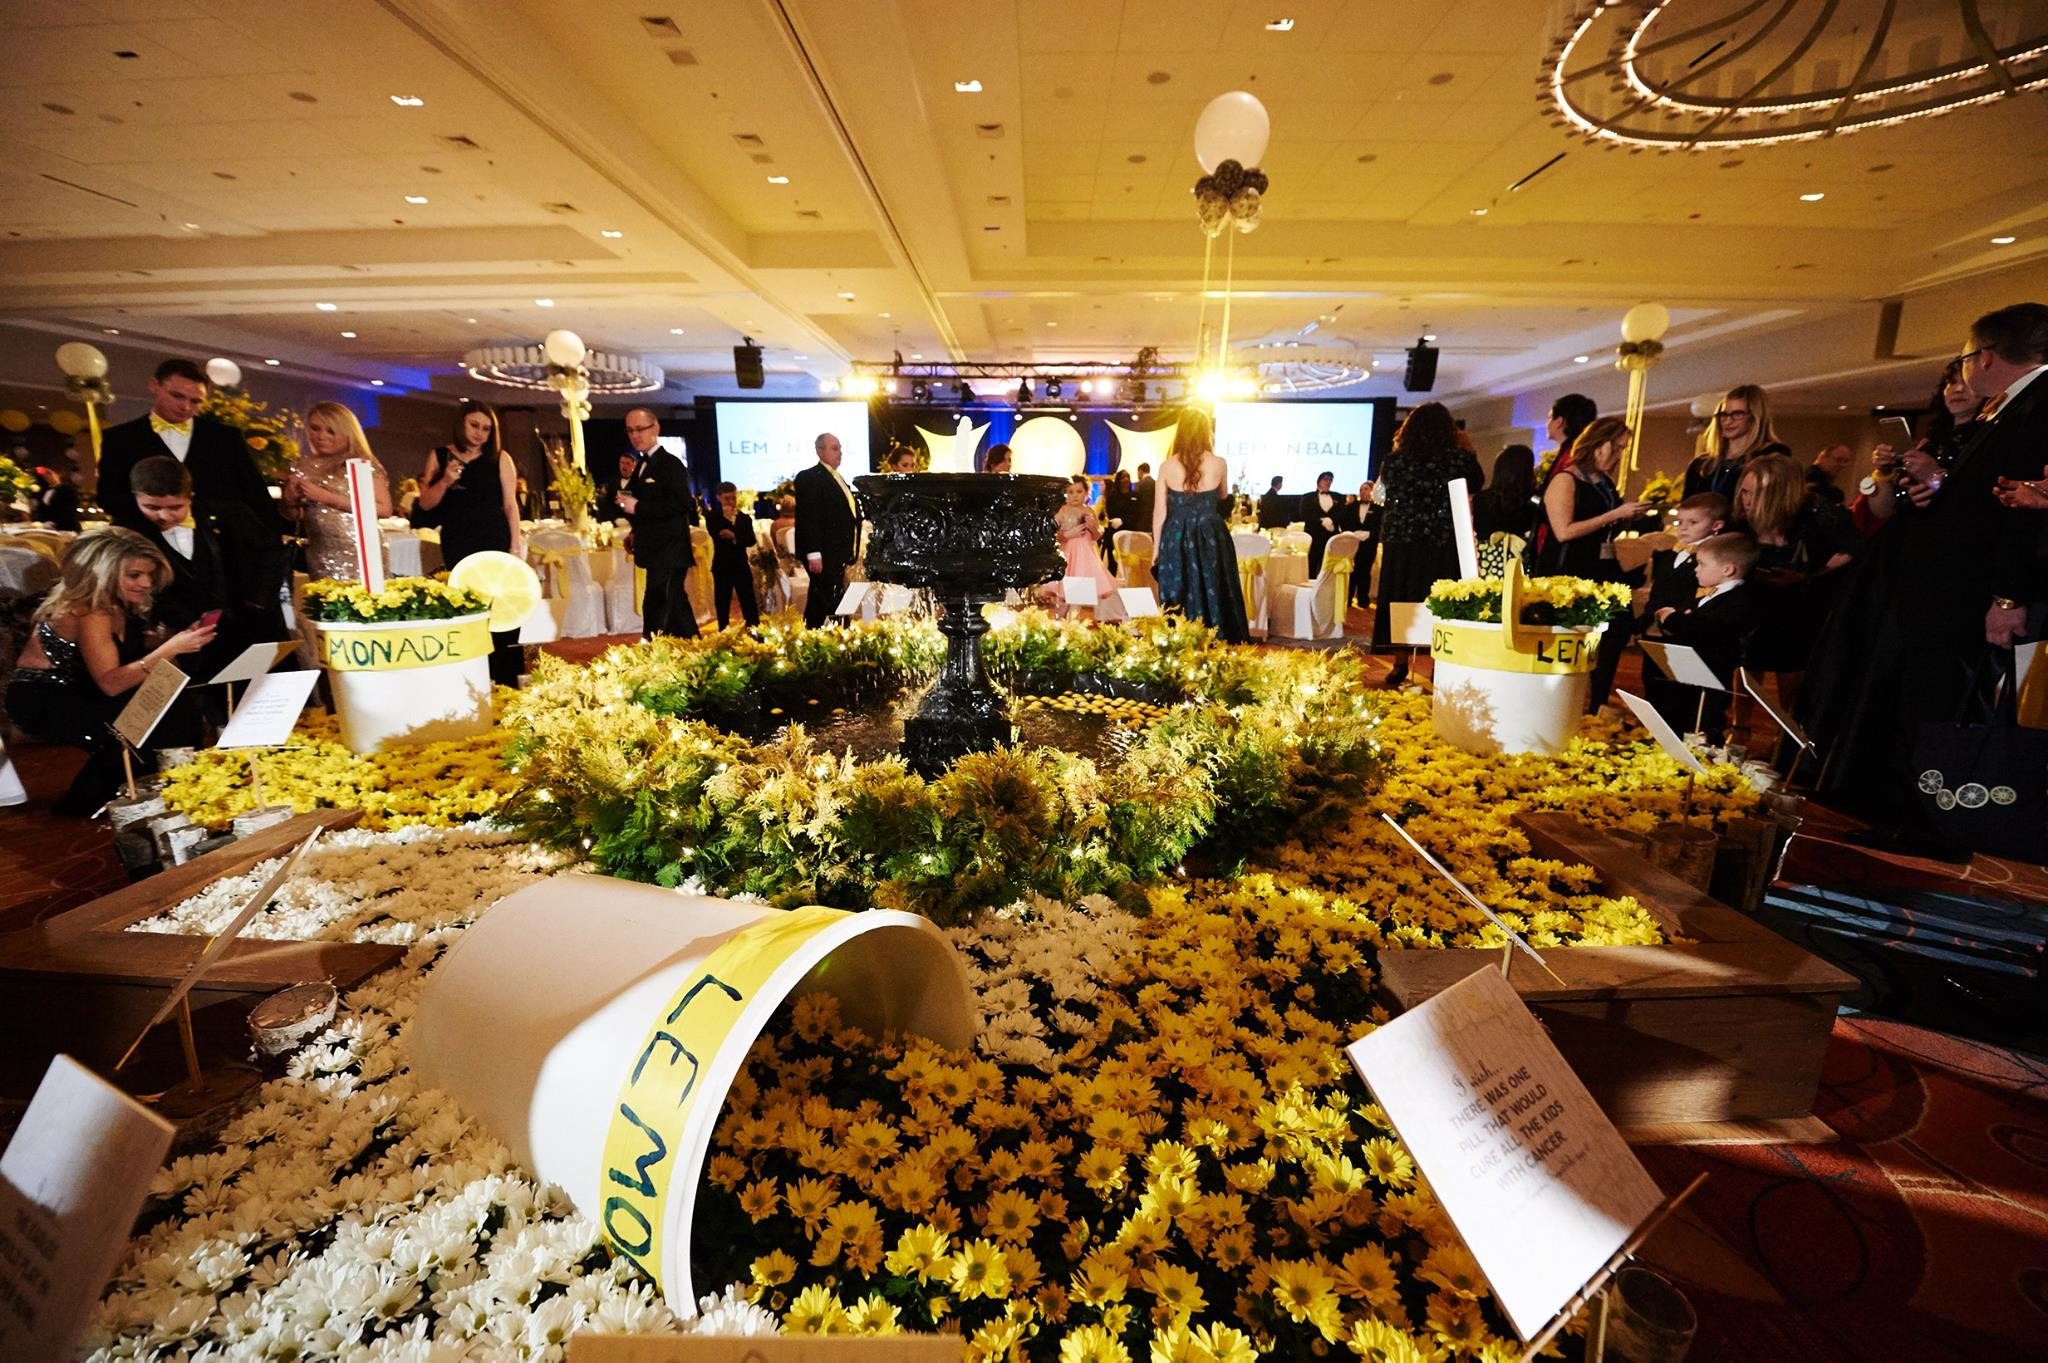 Each year, Terren supports the Alex's Lemonade Stand charity with a custom display at their Philadelphia Lemon Ball.